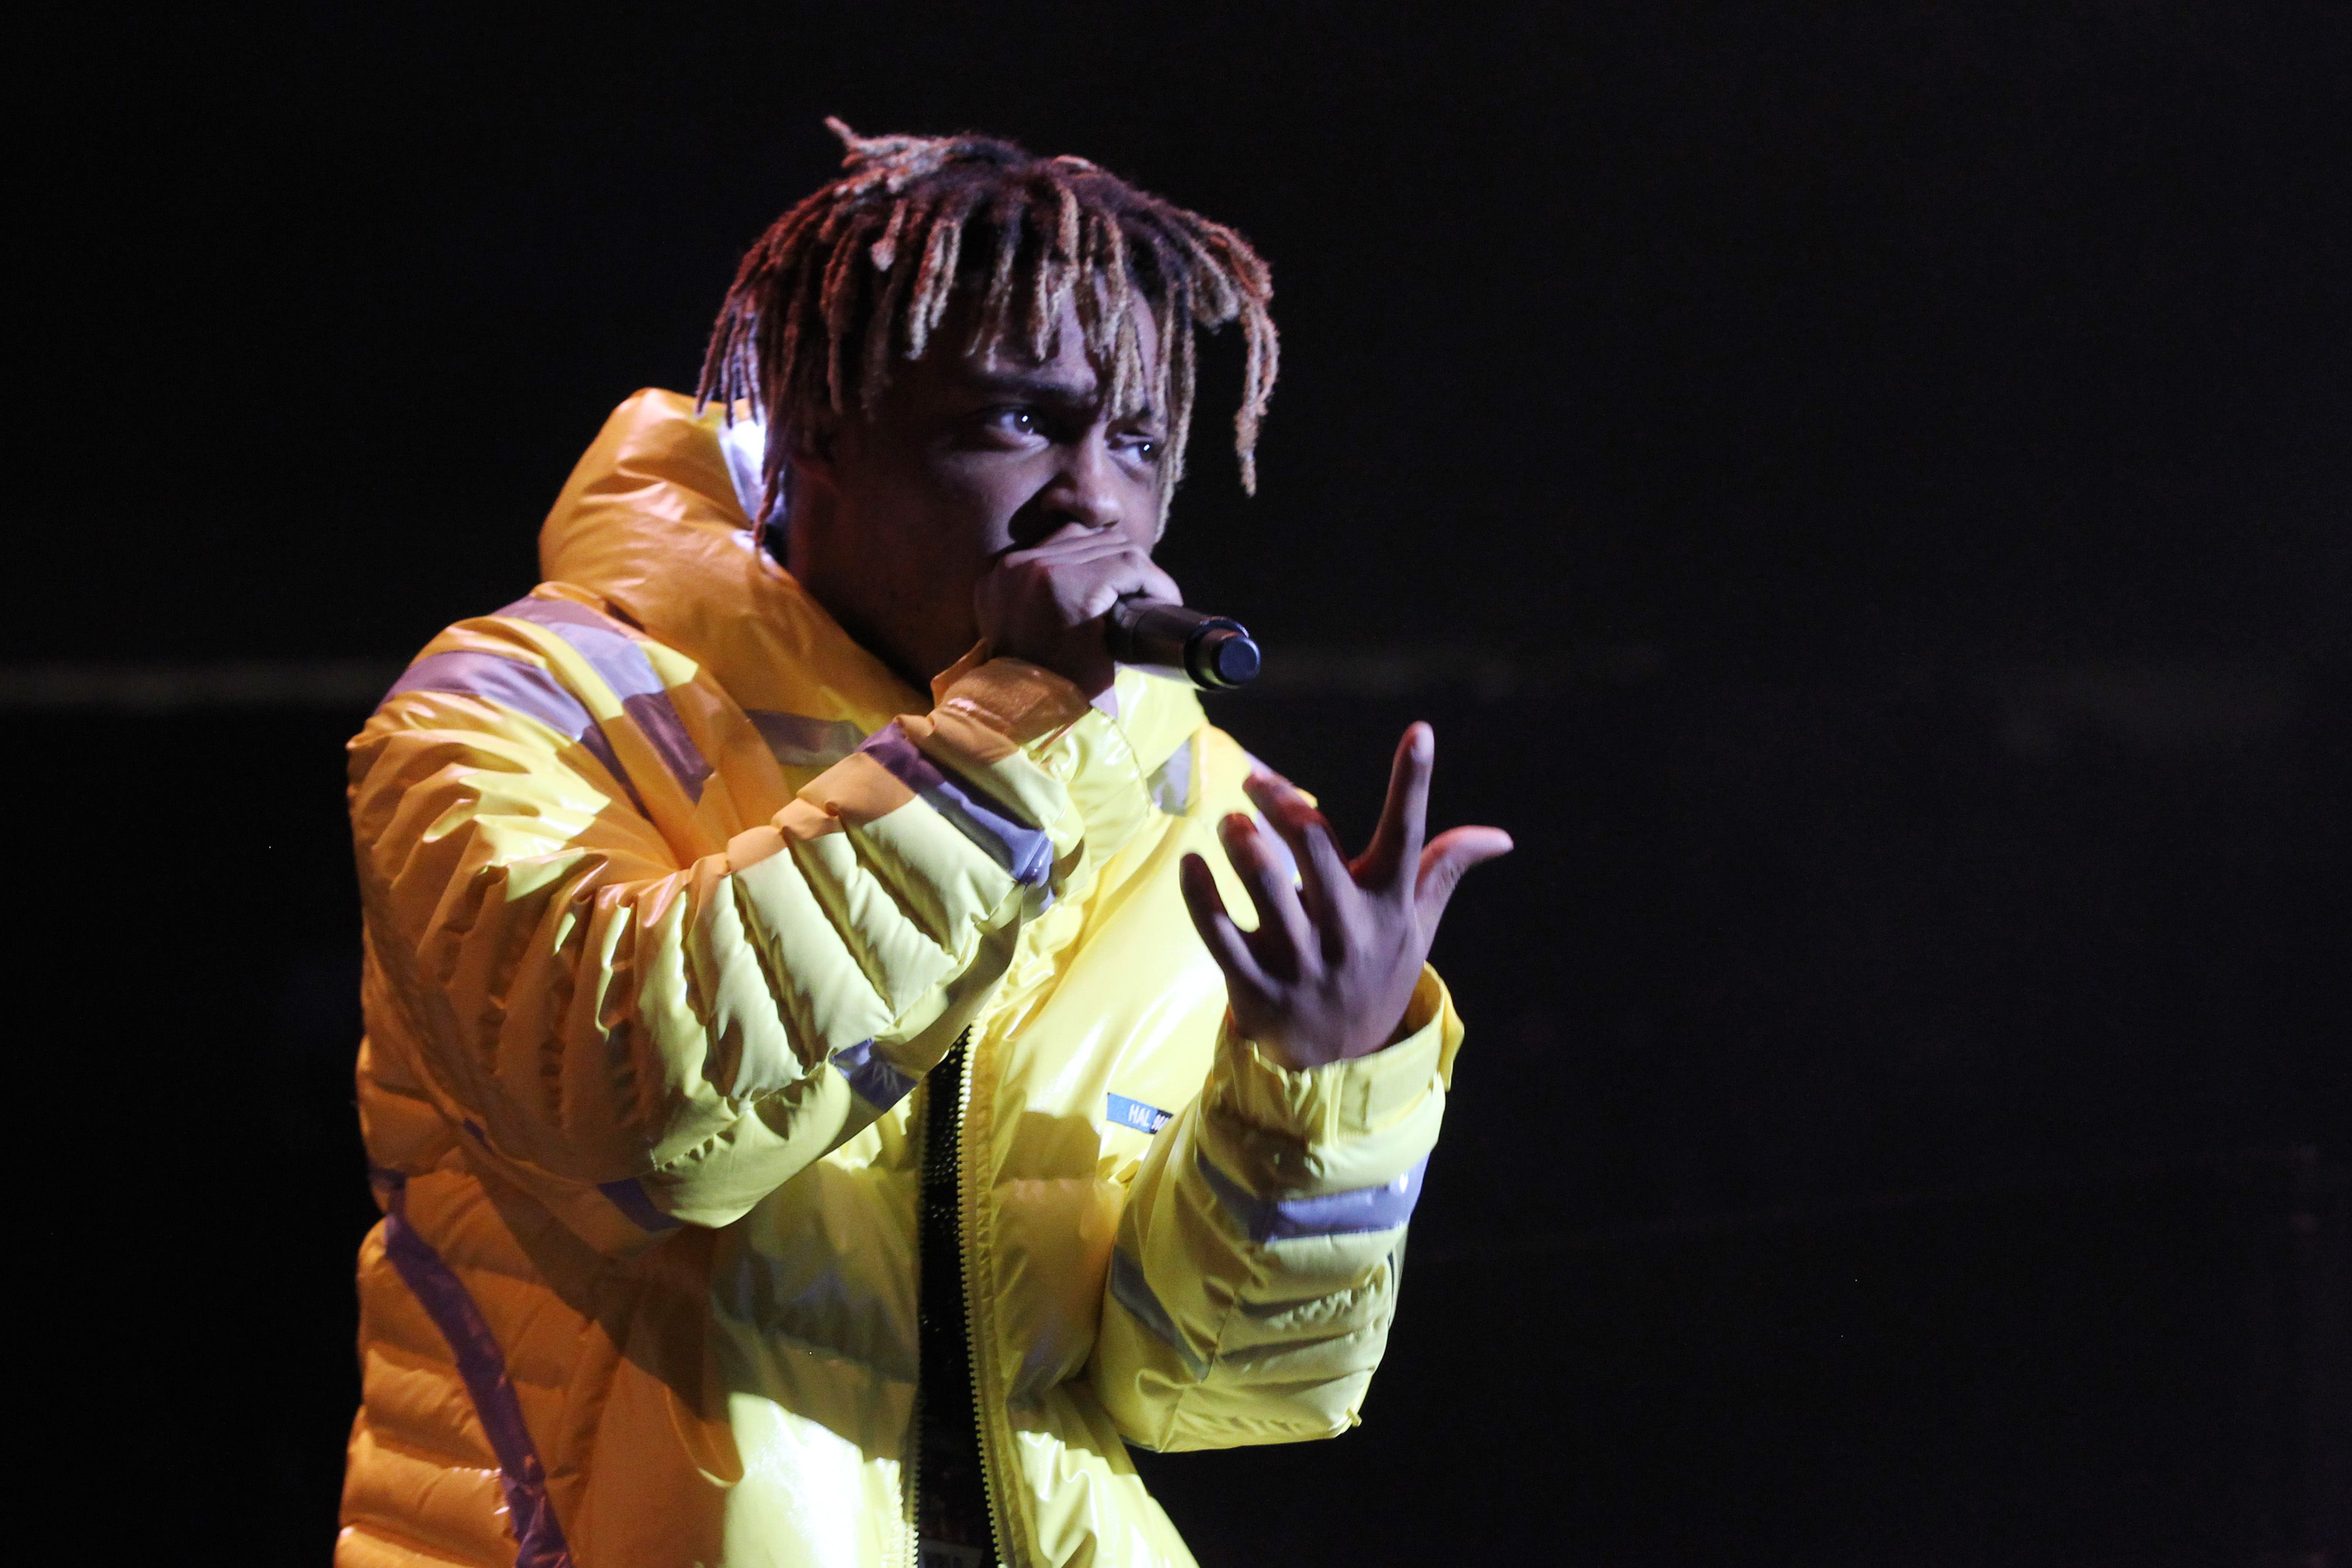 The Rapper Juice WRLD Has Died at Just 21 Years Old